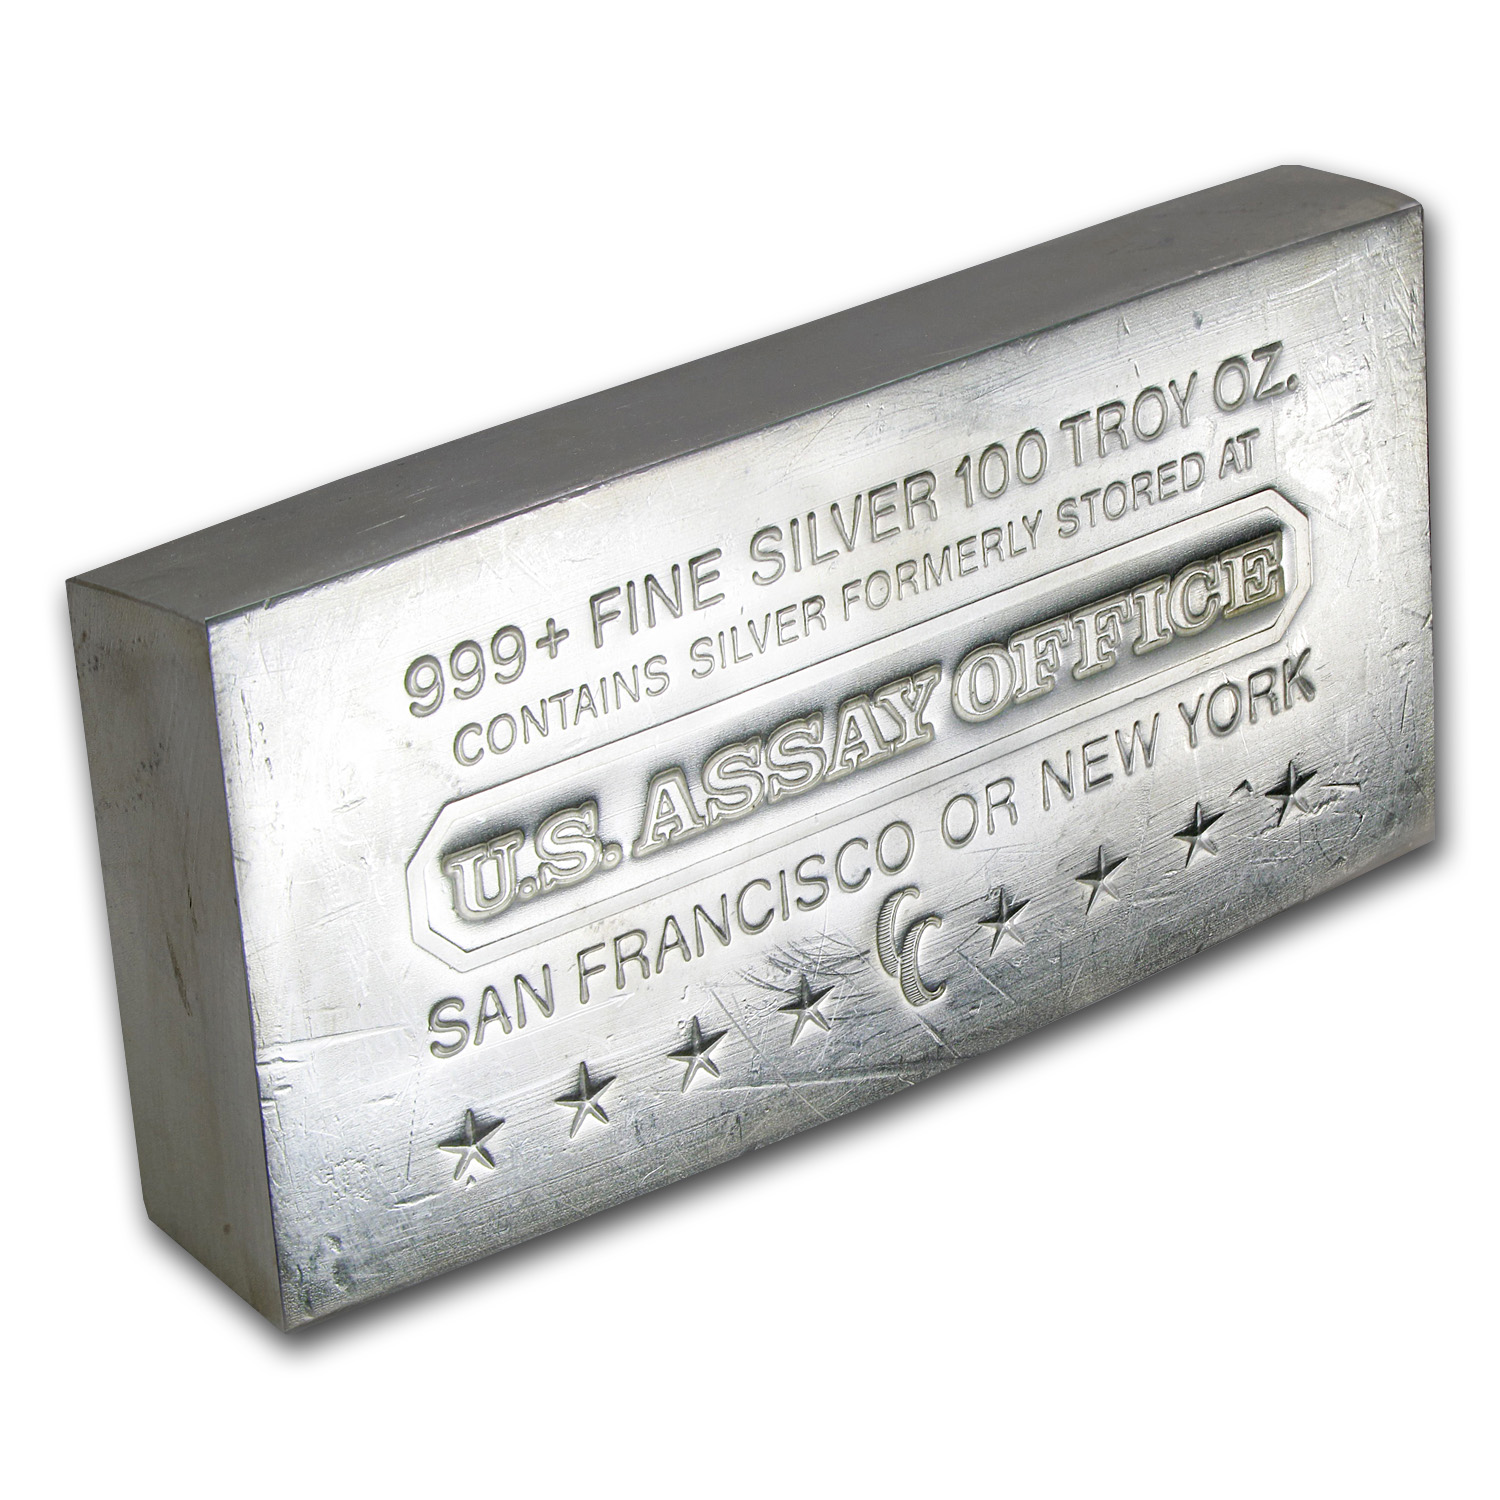 100 oz Silver Bars - U.S. Assay Office (Struck)